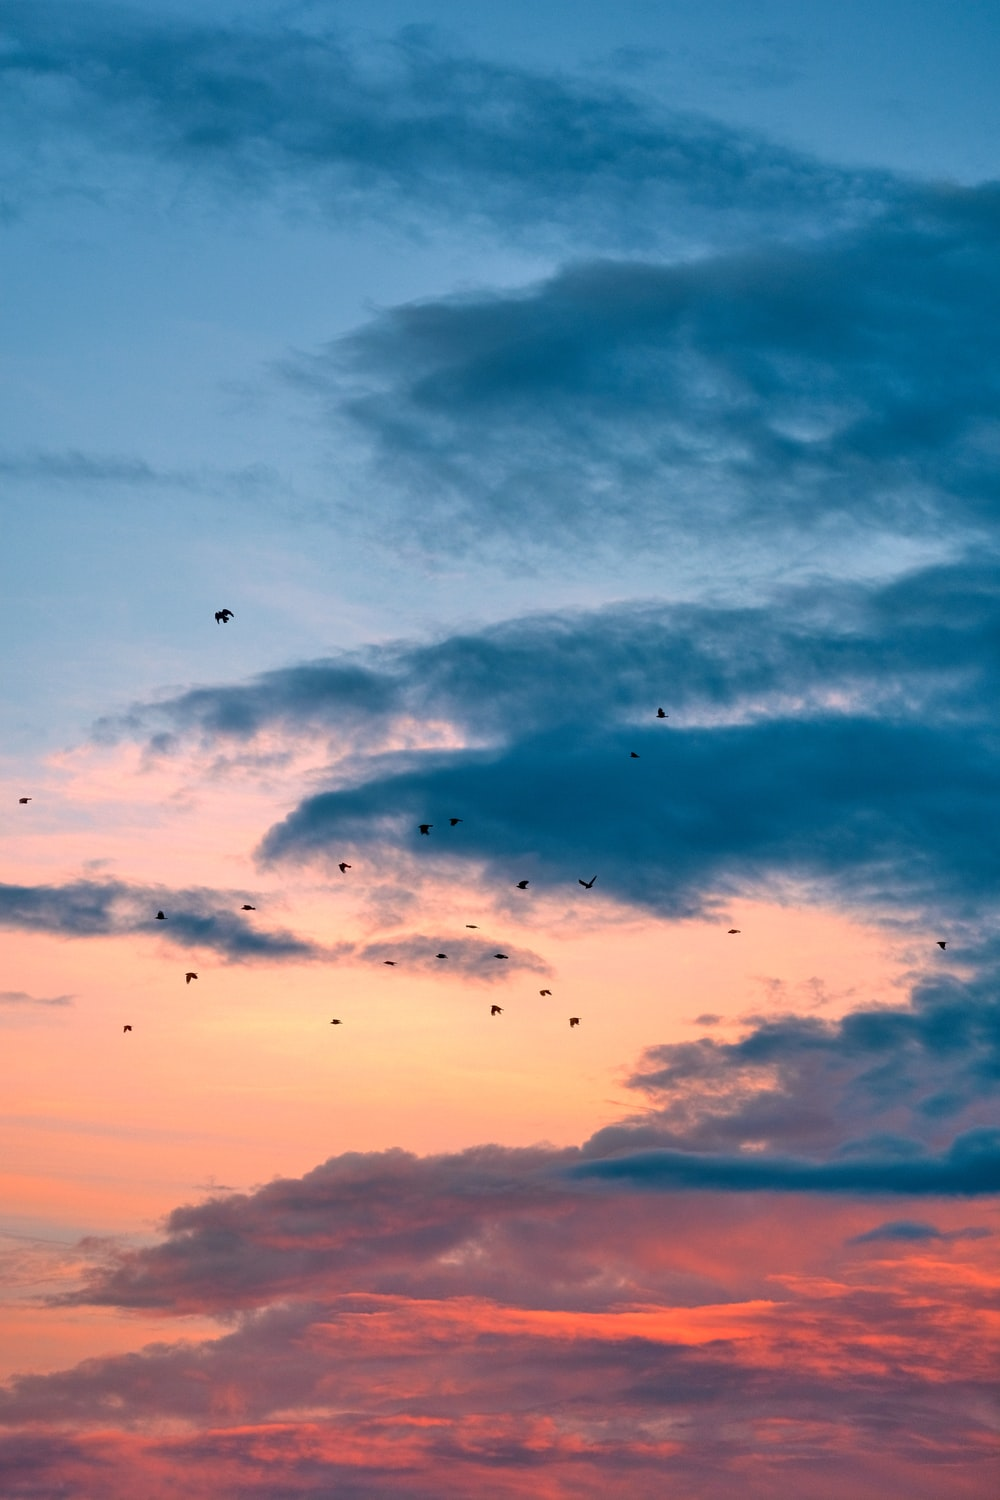 silhouette of birds flying under cloudy sky during sunset